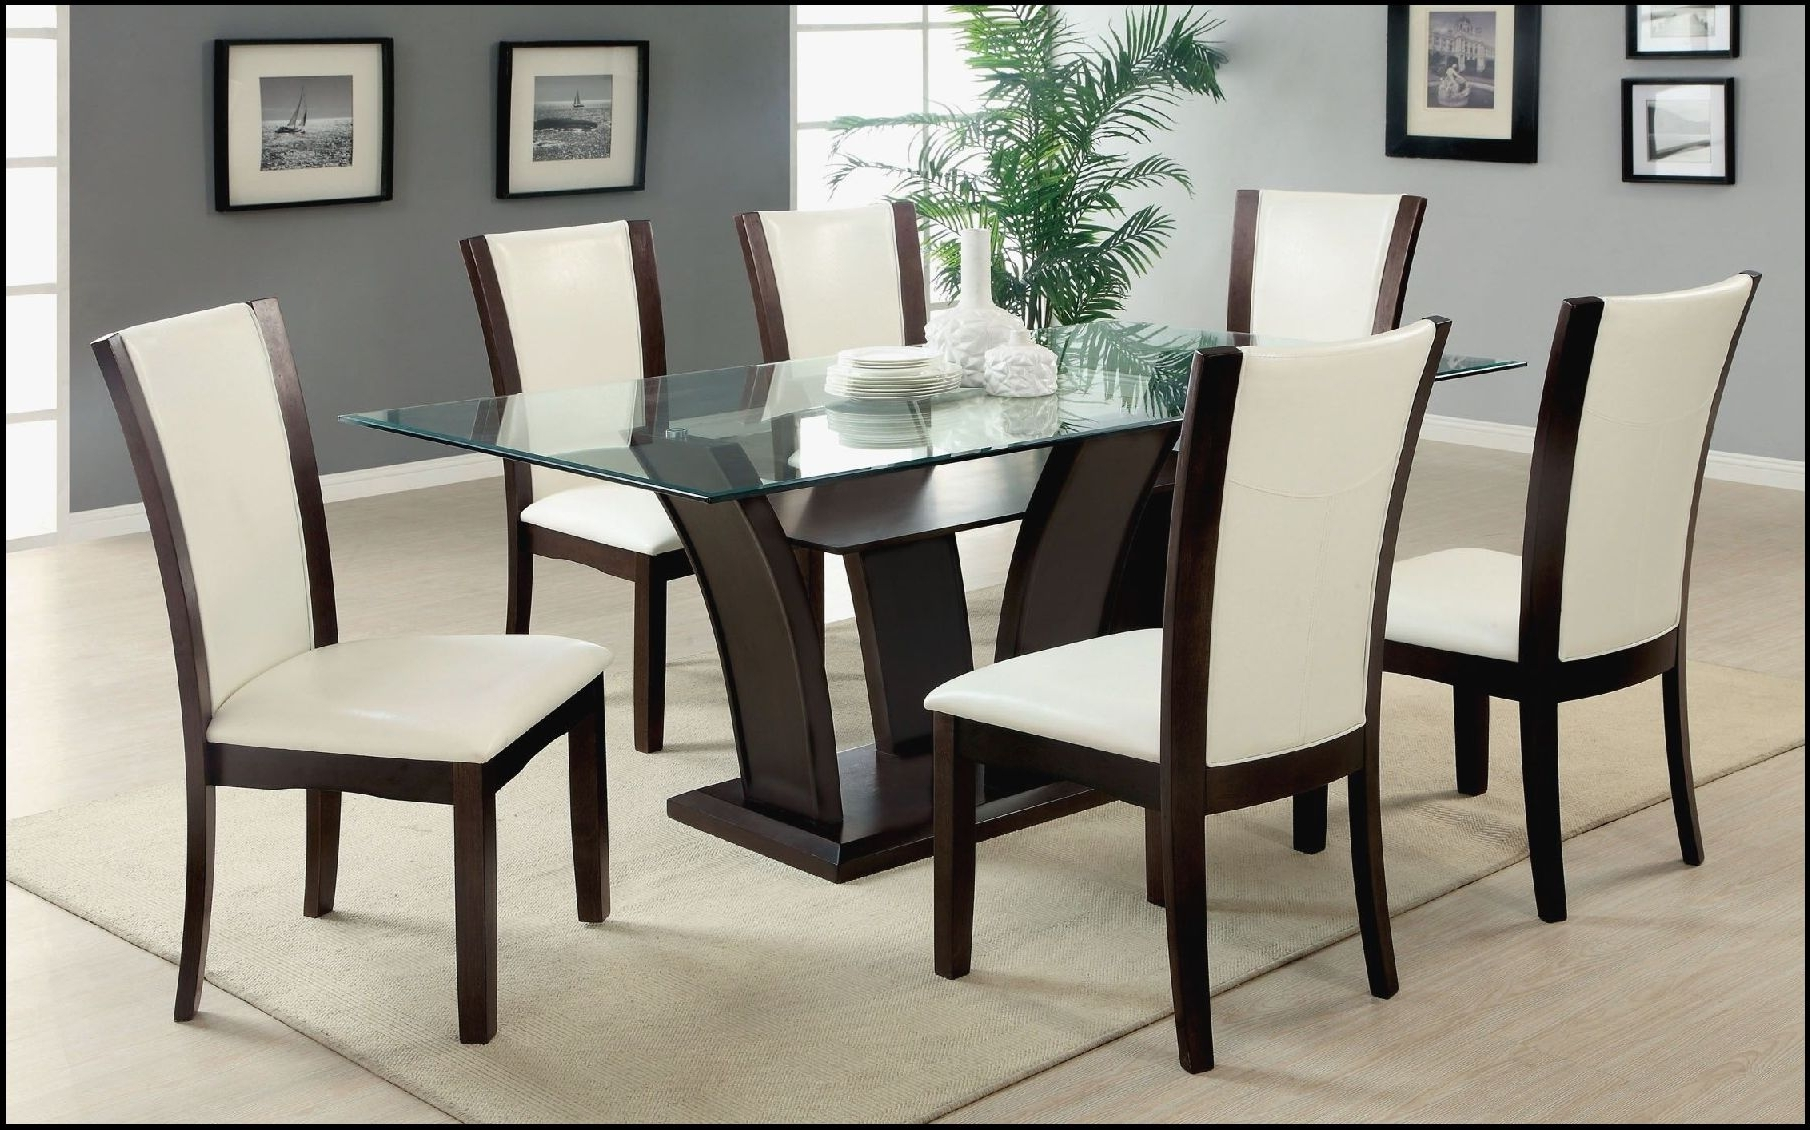 Stylish Dining Chairs In Most Current Great Stylish Ideas Dining Chairs Set Of 6 11 With Patio Dining (View 20 of 25)